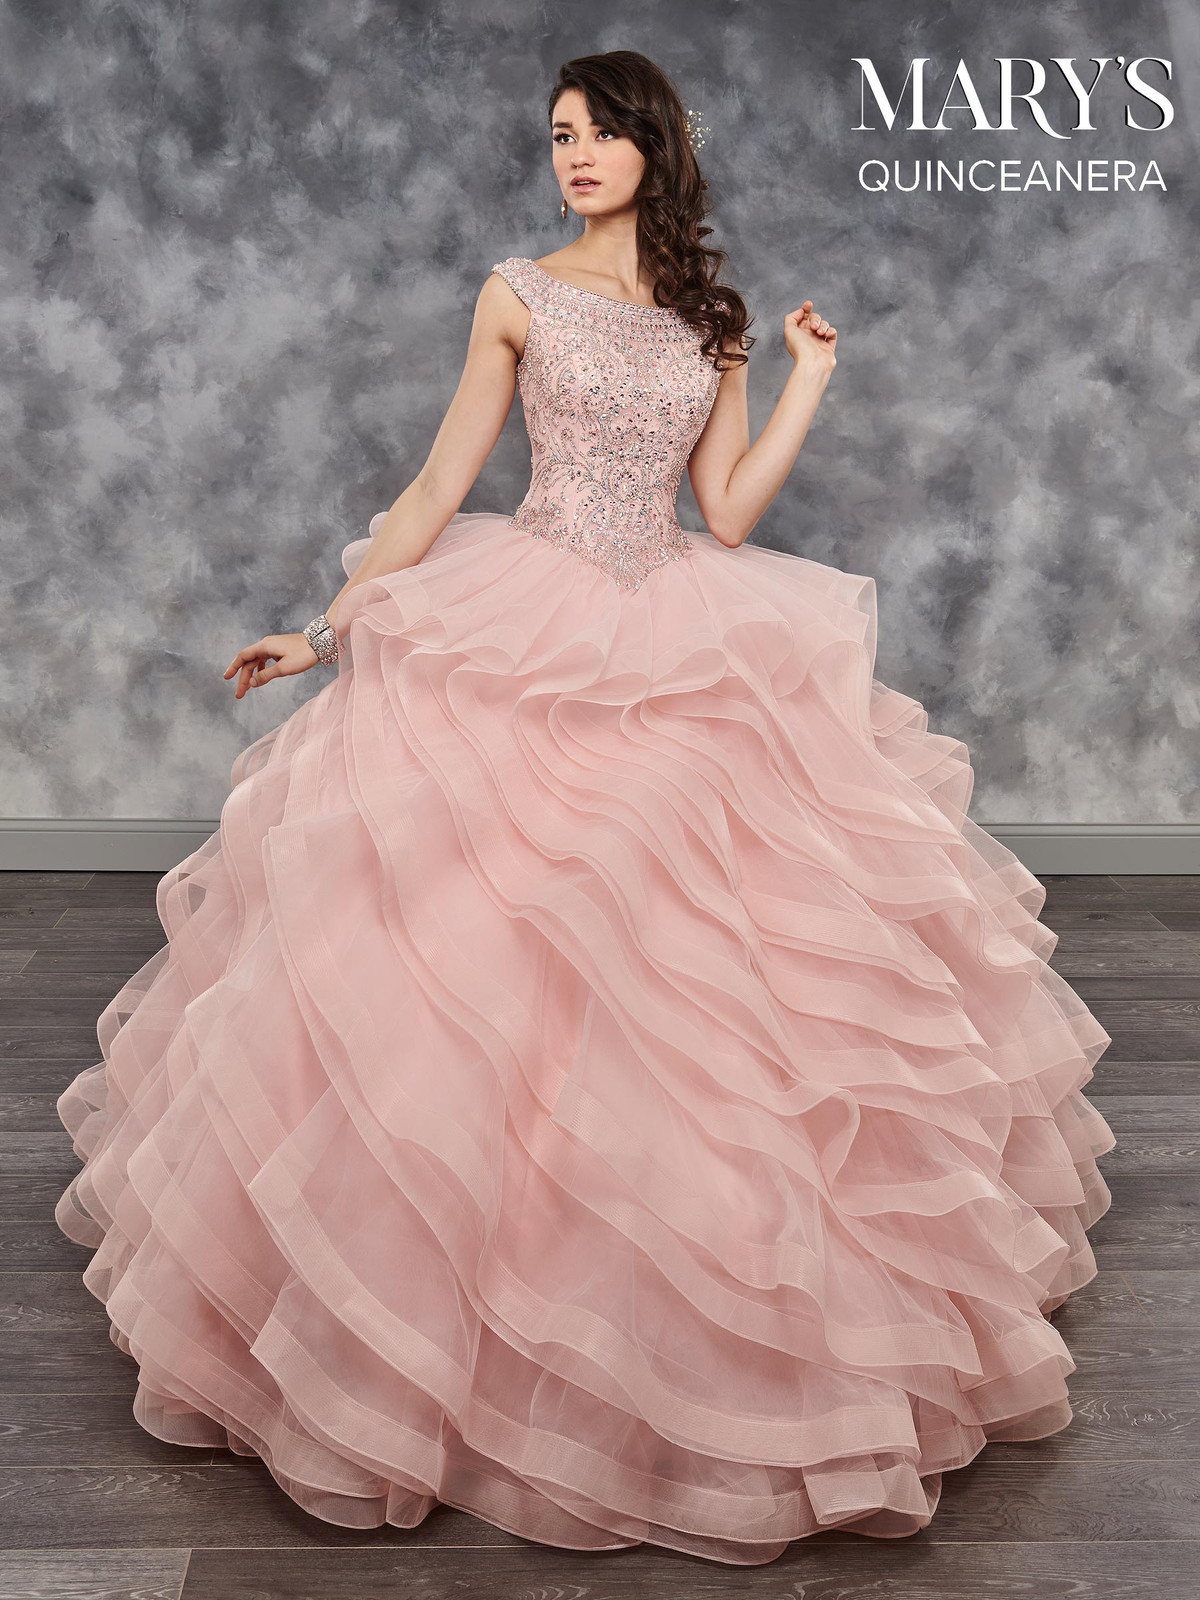 cbd8dcc69e5 Quinceanera Dresses For Rent In Hialeah - Aztec Stone and Reclamations